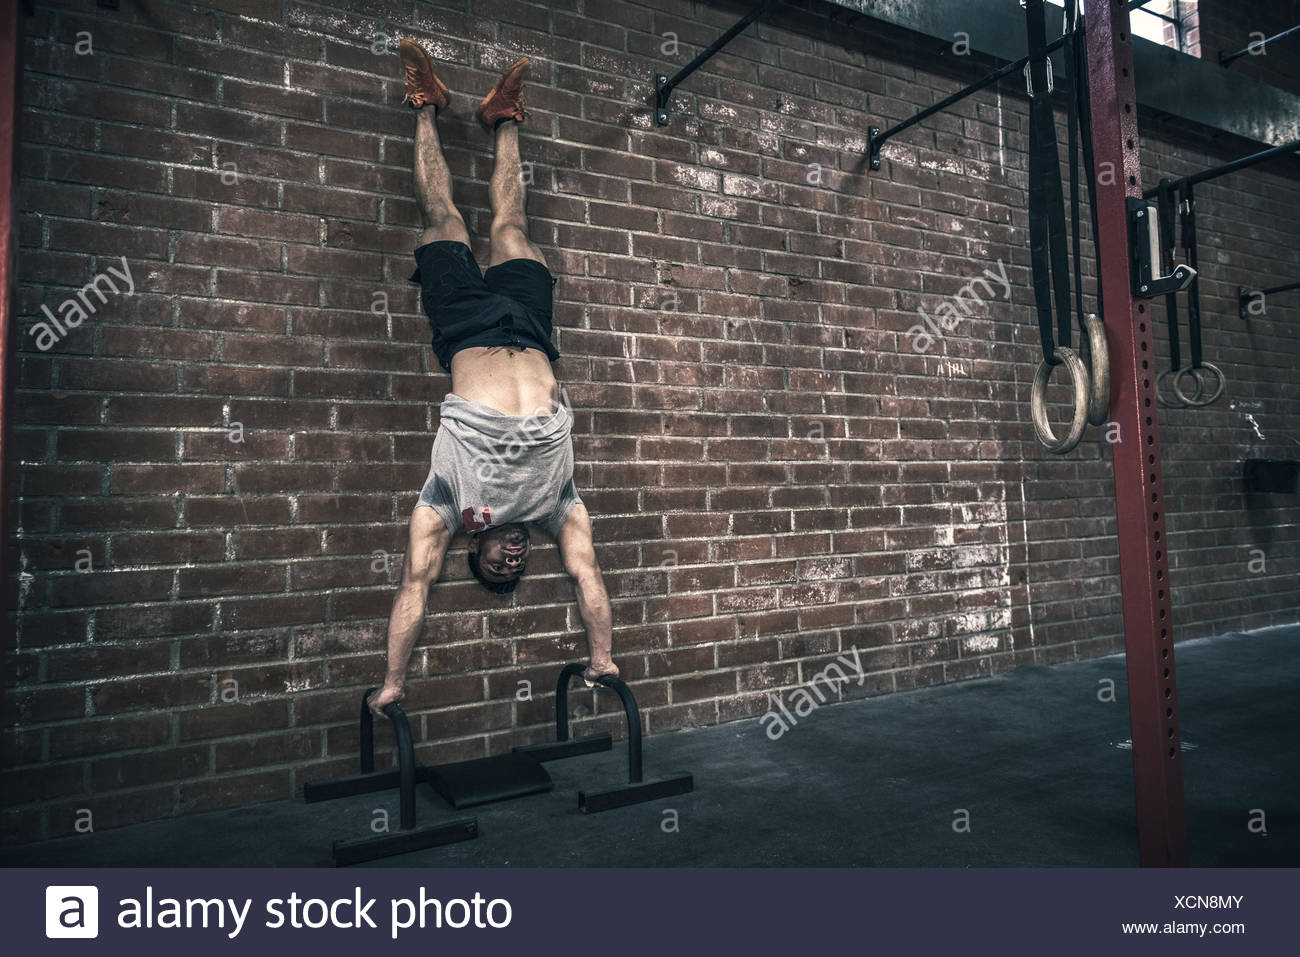 Young man doing handstand  in gym - Stock Image